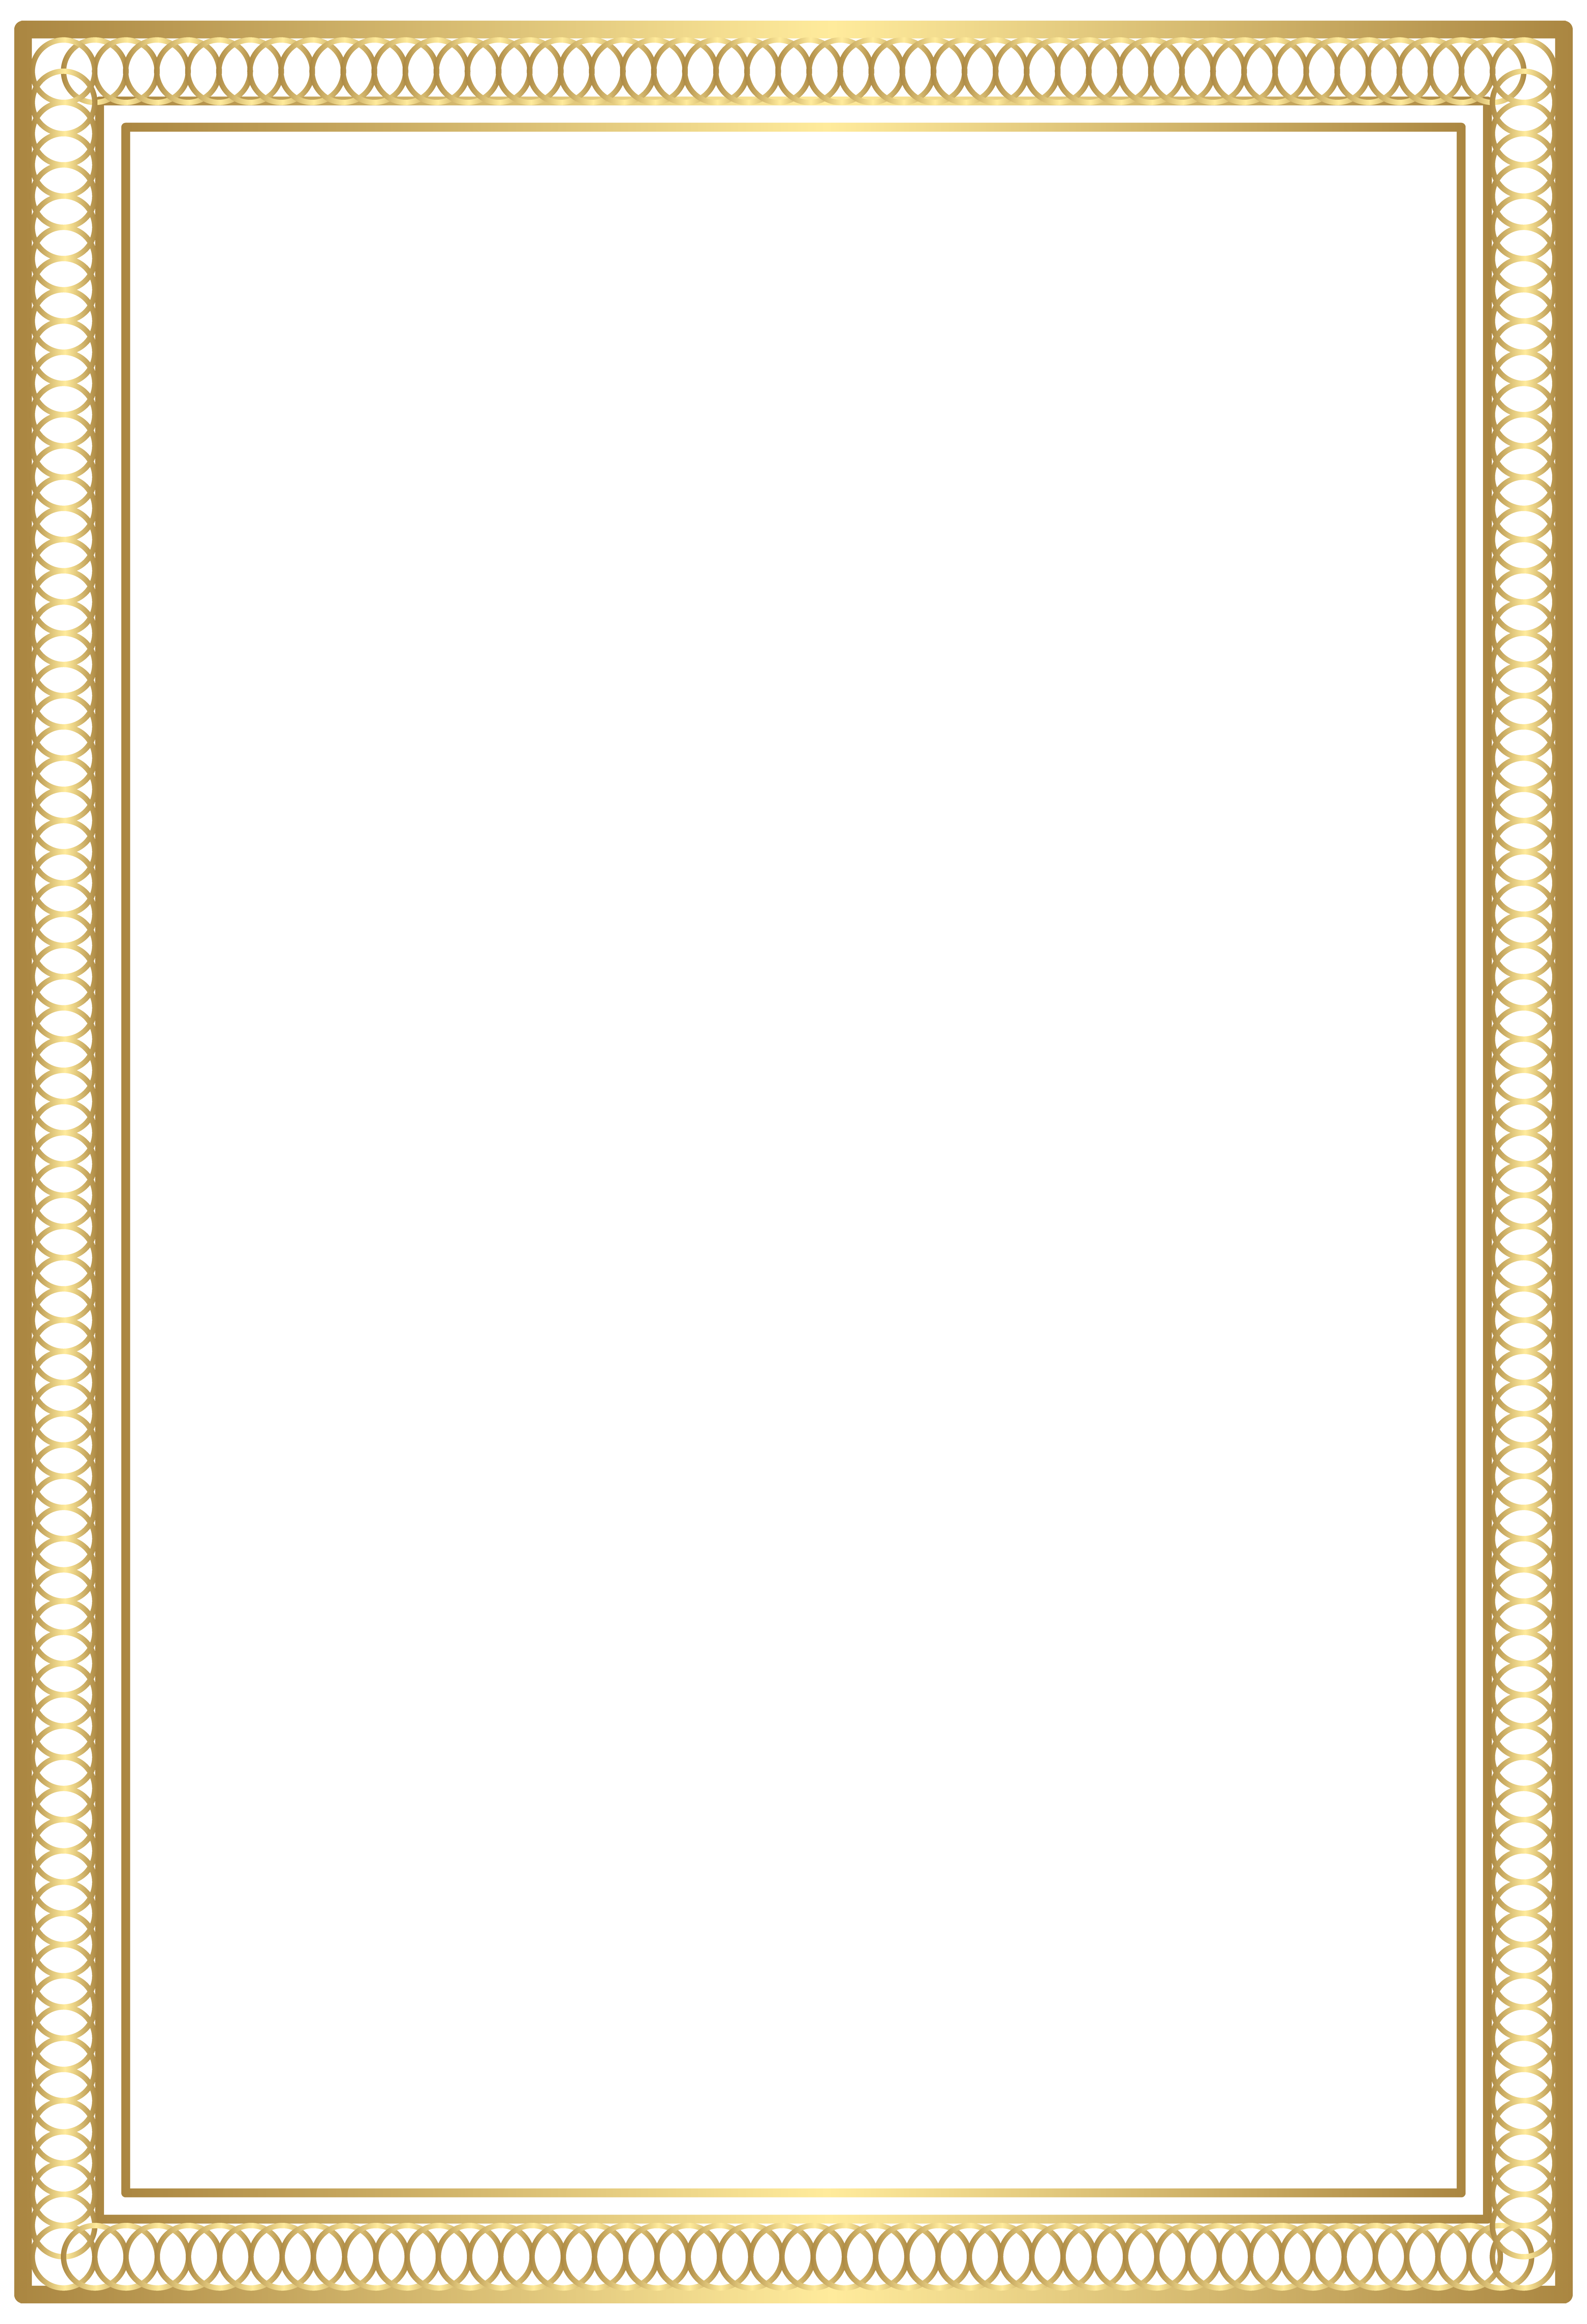 Piano clipart border. Decorative frame gold png